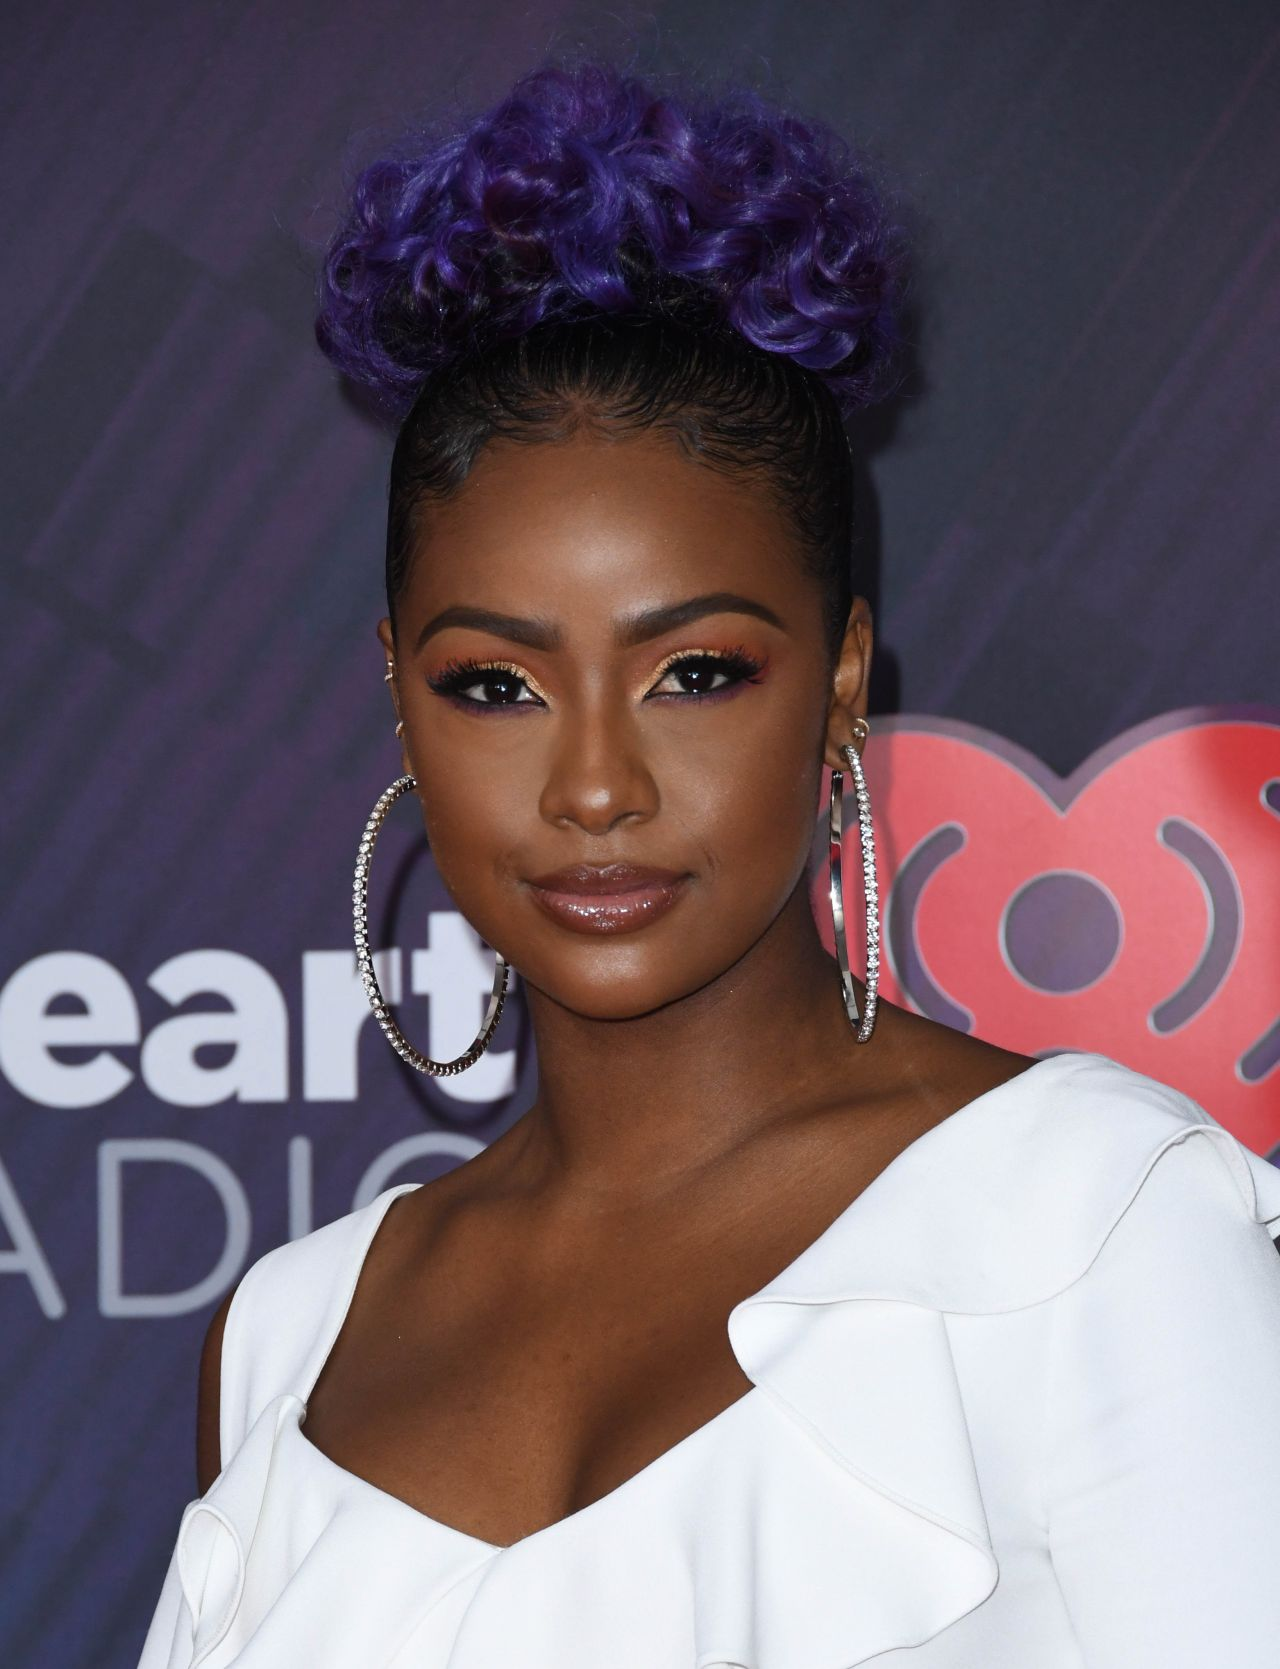 Justine Skye nudes (22 photo), video Fappening, Twitter, braless 2017